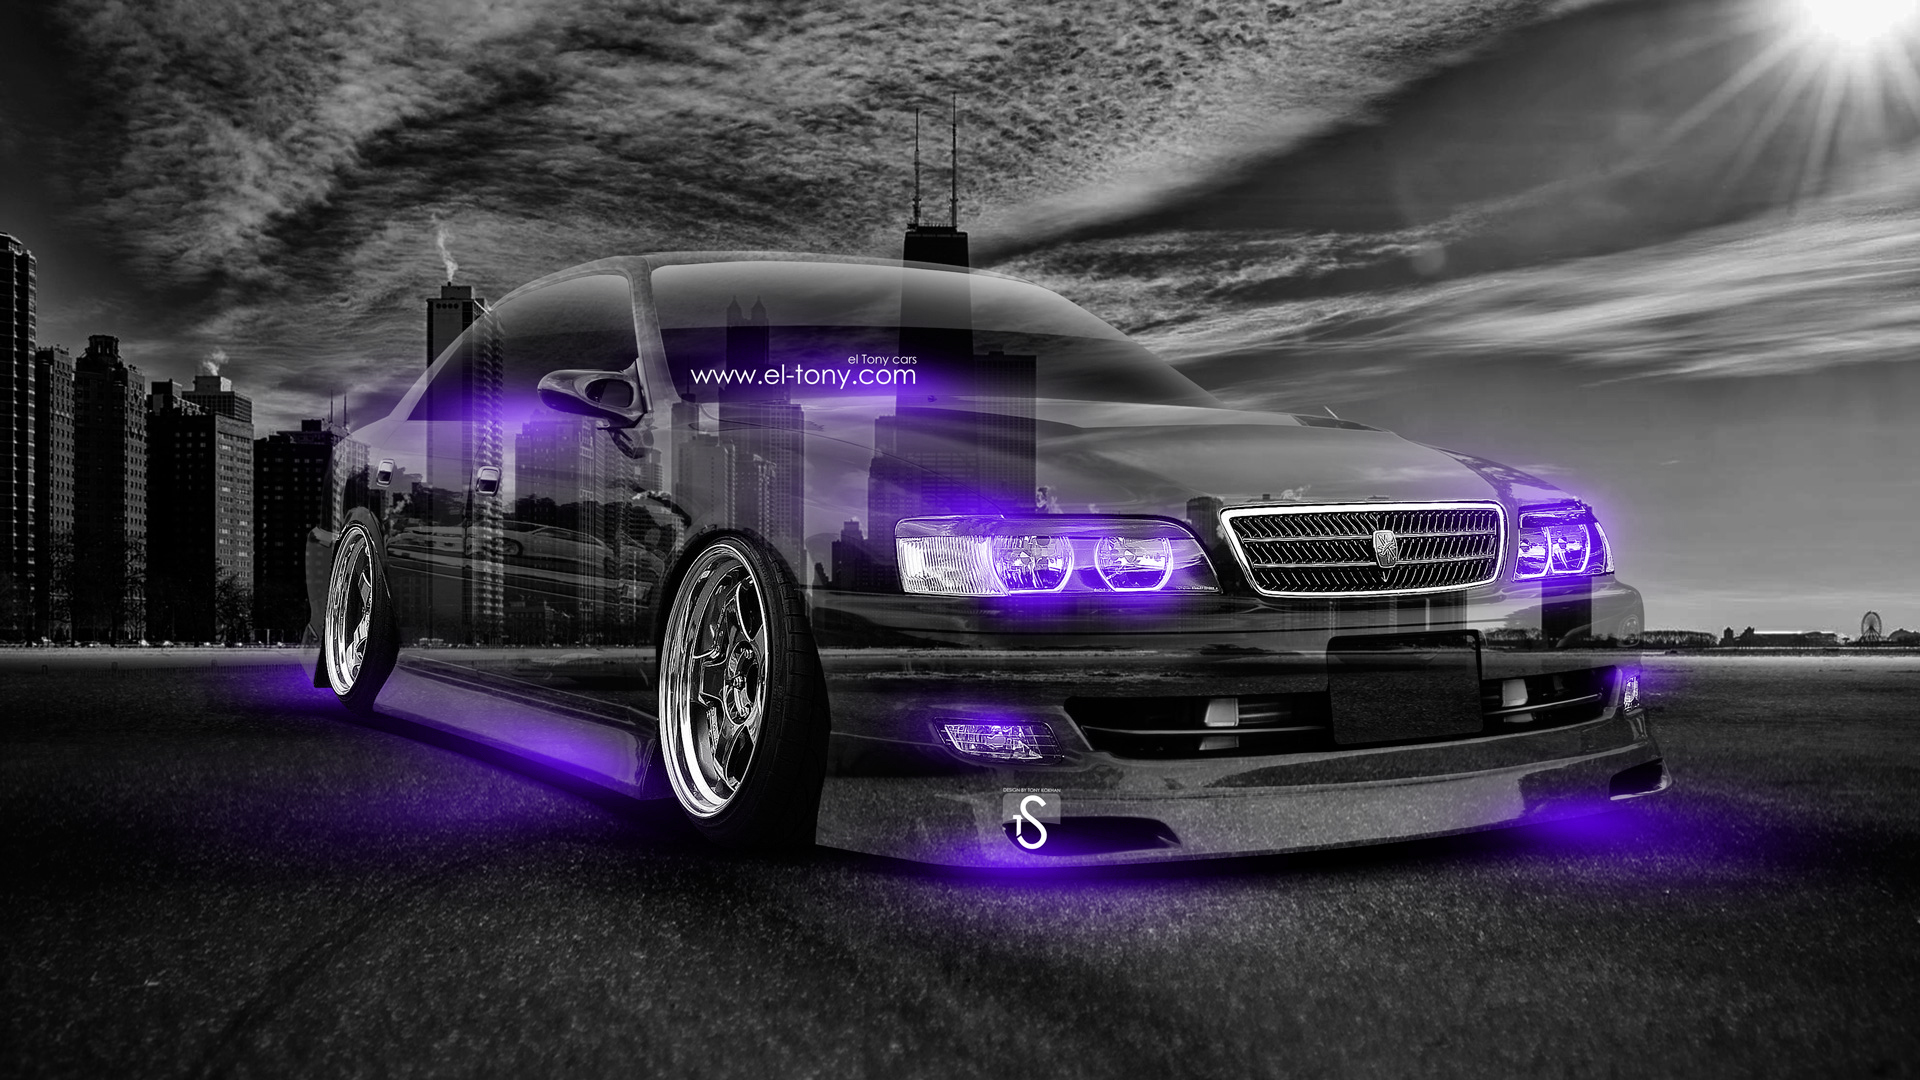 Beautiful Toyota Chaser JZX100 JDM Crystal City Day Car